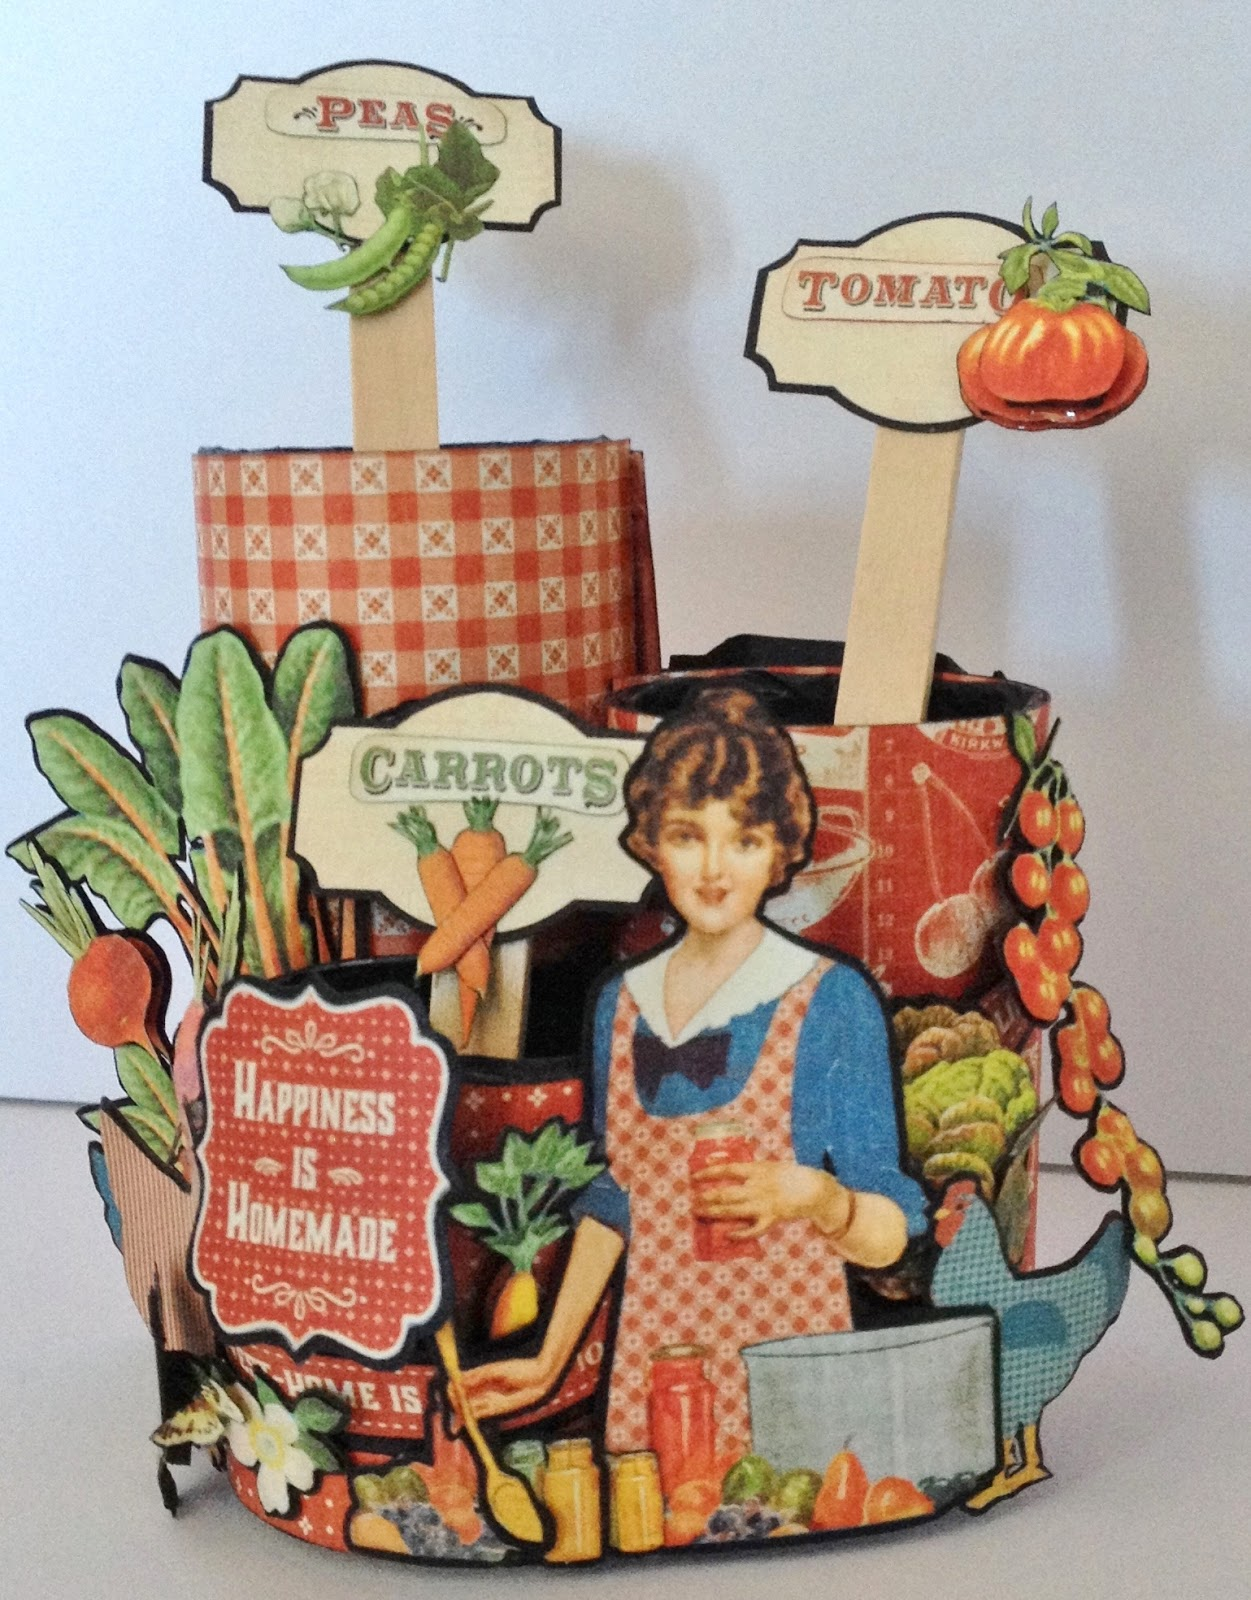 How to make scrapbook video - Great To Use The Seed Images From The Paper Line Also